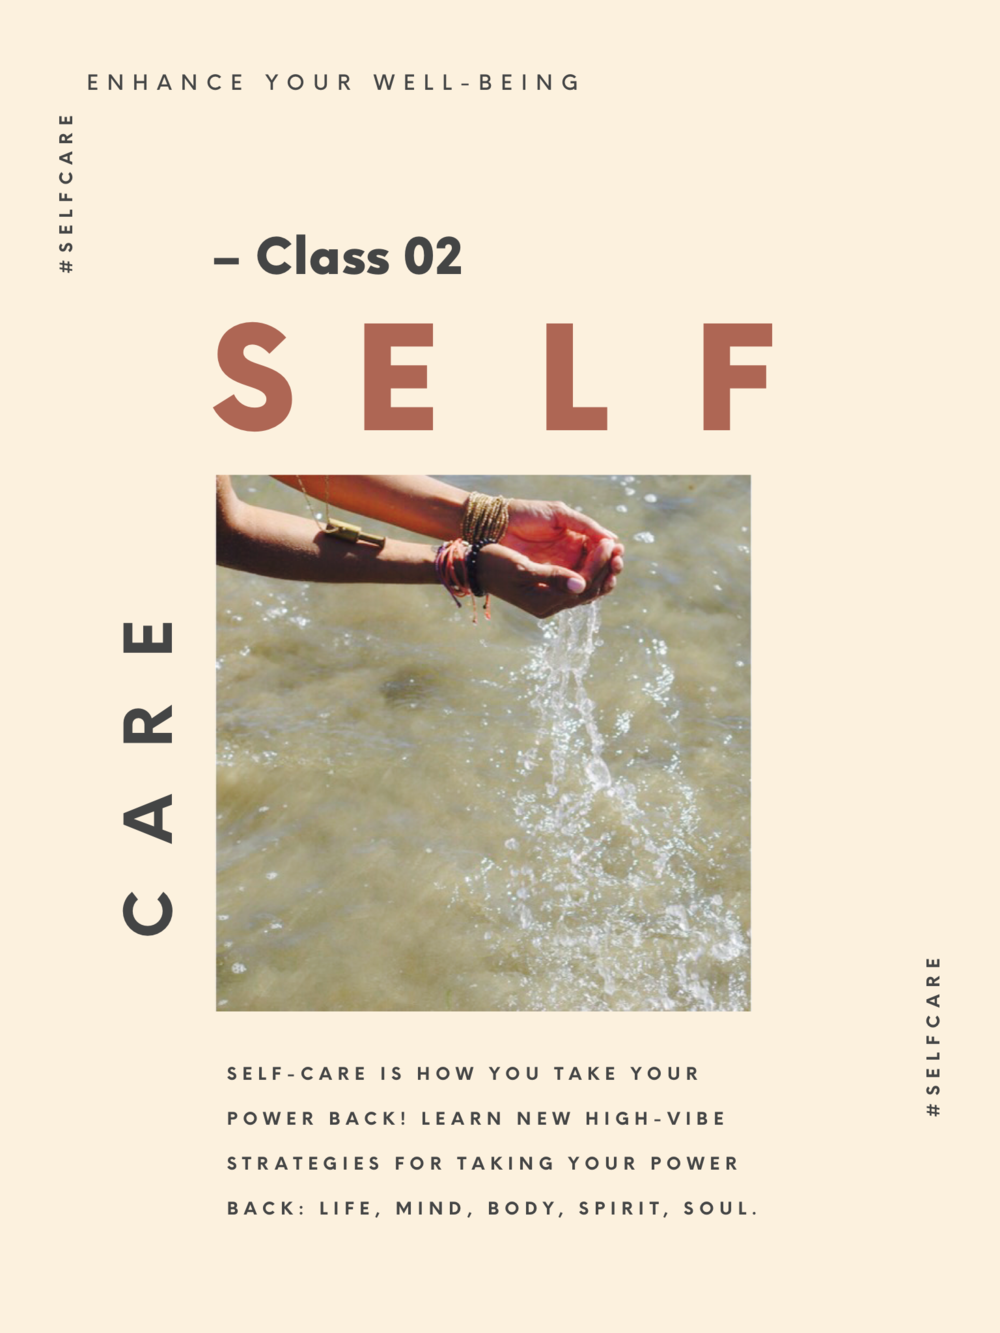 Learn new high-vibe strategies for taking your power back: life, mind, body, emotional, spirit, and soul. - Watch belowWe'll self-assess our lives and discover what's needed to expand into higher levels of growth, consciousness, inner-beauty,potential, peace, and power.See you in class! An email with access will be sent to you on the morning of class.To Prepare: set your positive intentions for the class, be prepared to take notes if you're a note taker, bring an open heart + mind, and a cup of tea.